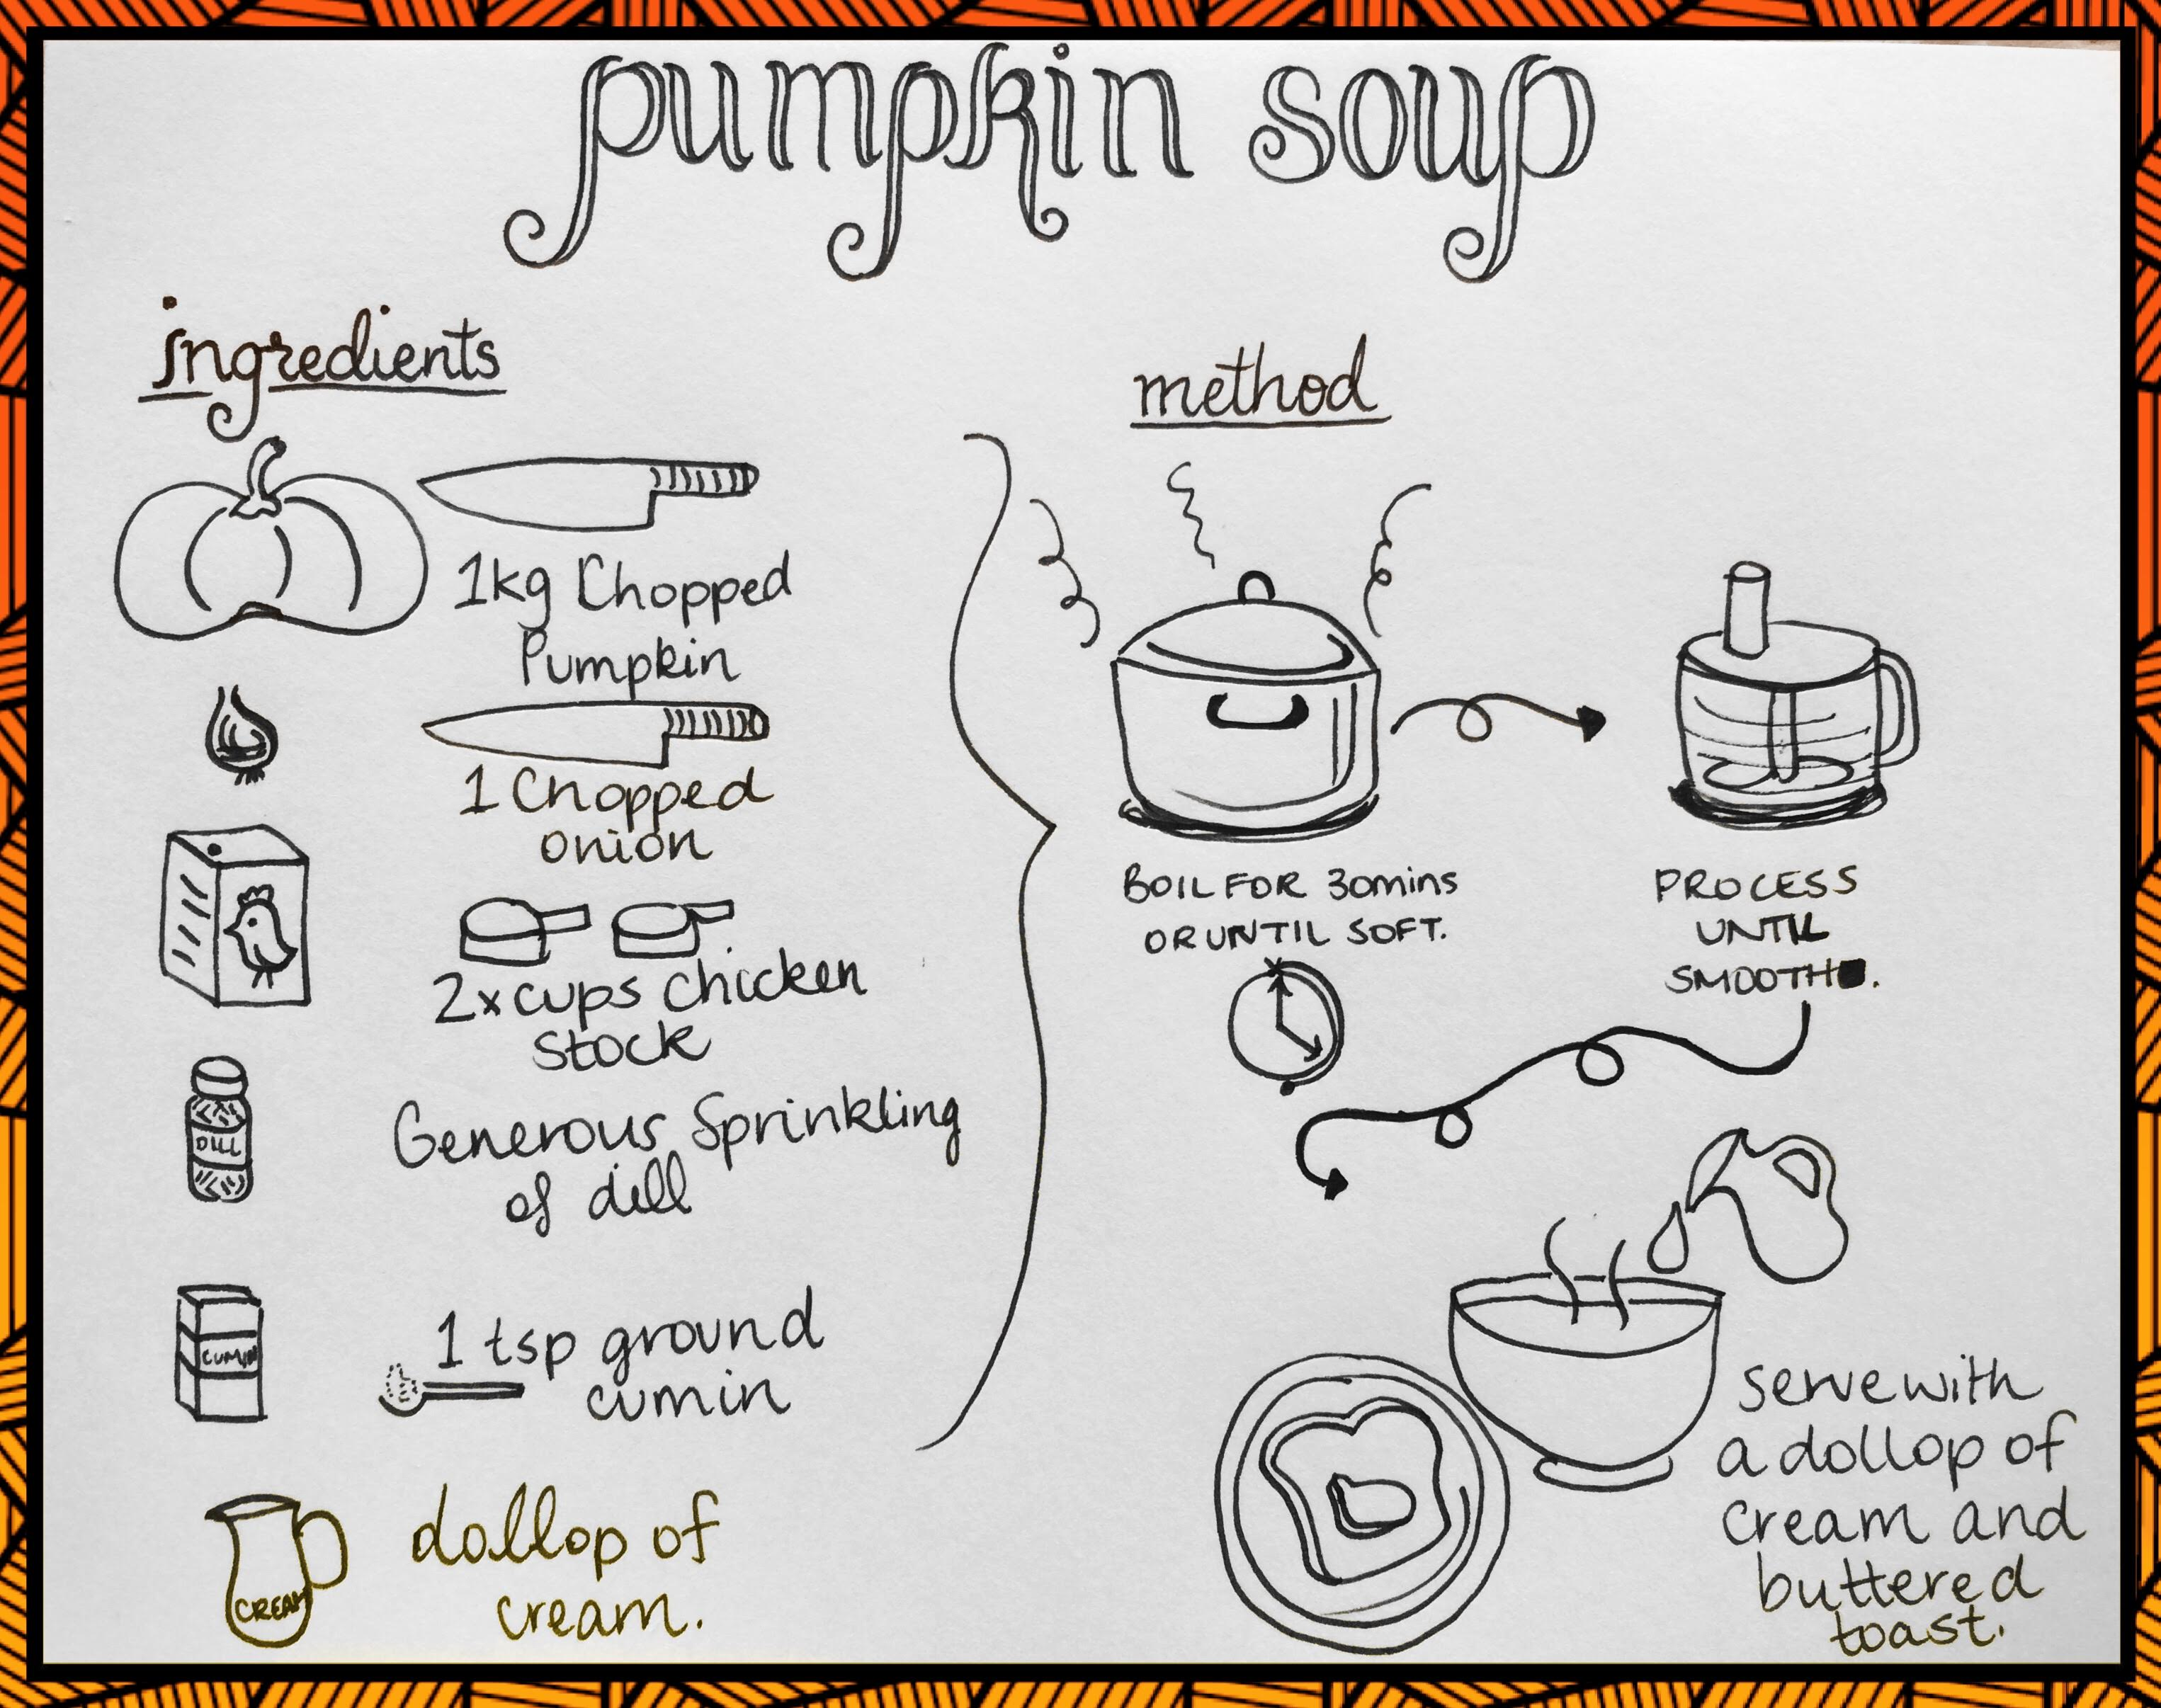 Pumpkin Soup Recipe 1kg chopped Pumpkin 1 chopped onion 2 Cups of chicken stock generous sprinkling of dill 1 teaspoon of ground cumin  boil everything for 30 minutes or until soft. Process in a food processor until smooth. Serve with a dollop of cream and buttered toast.